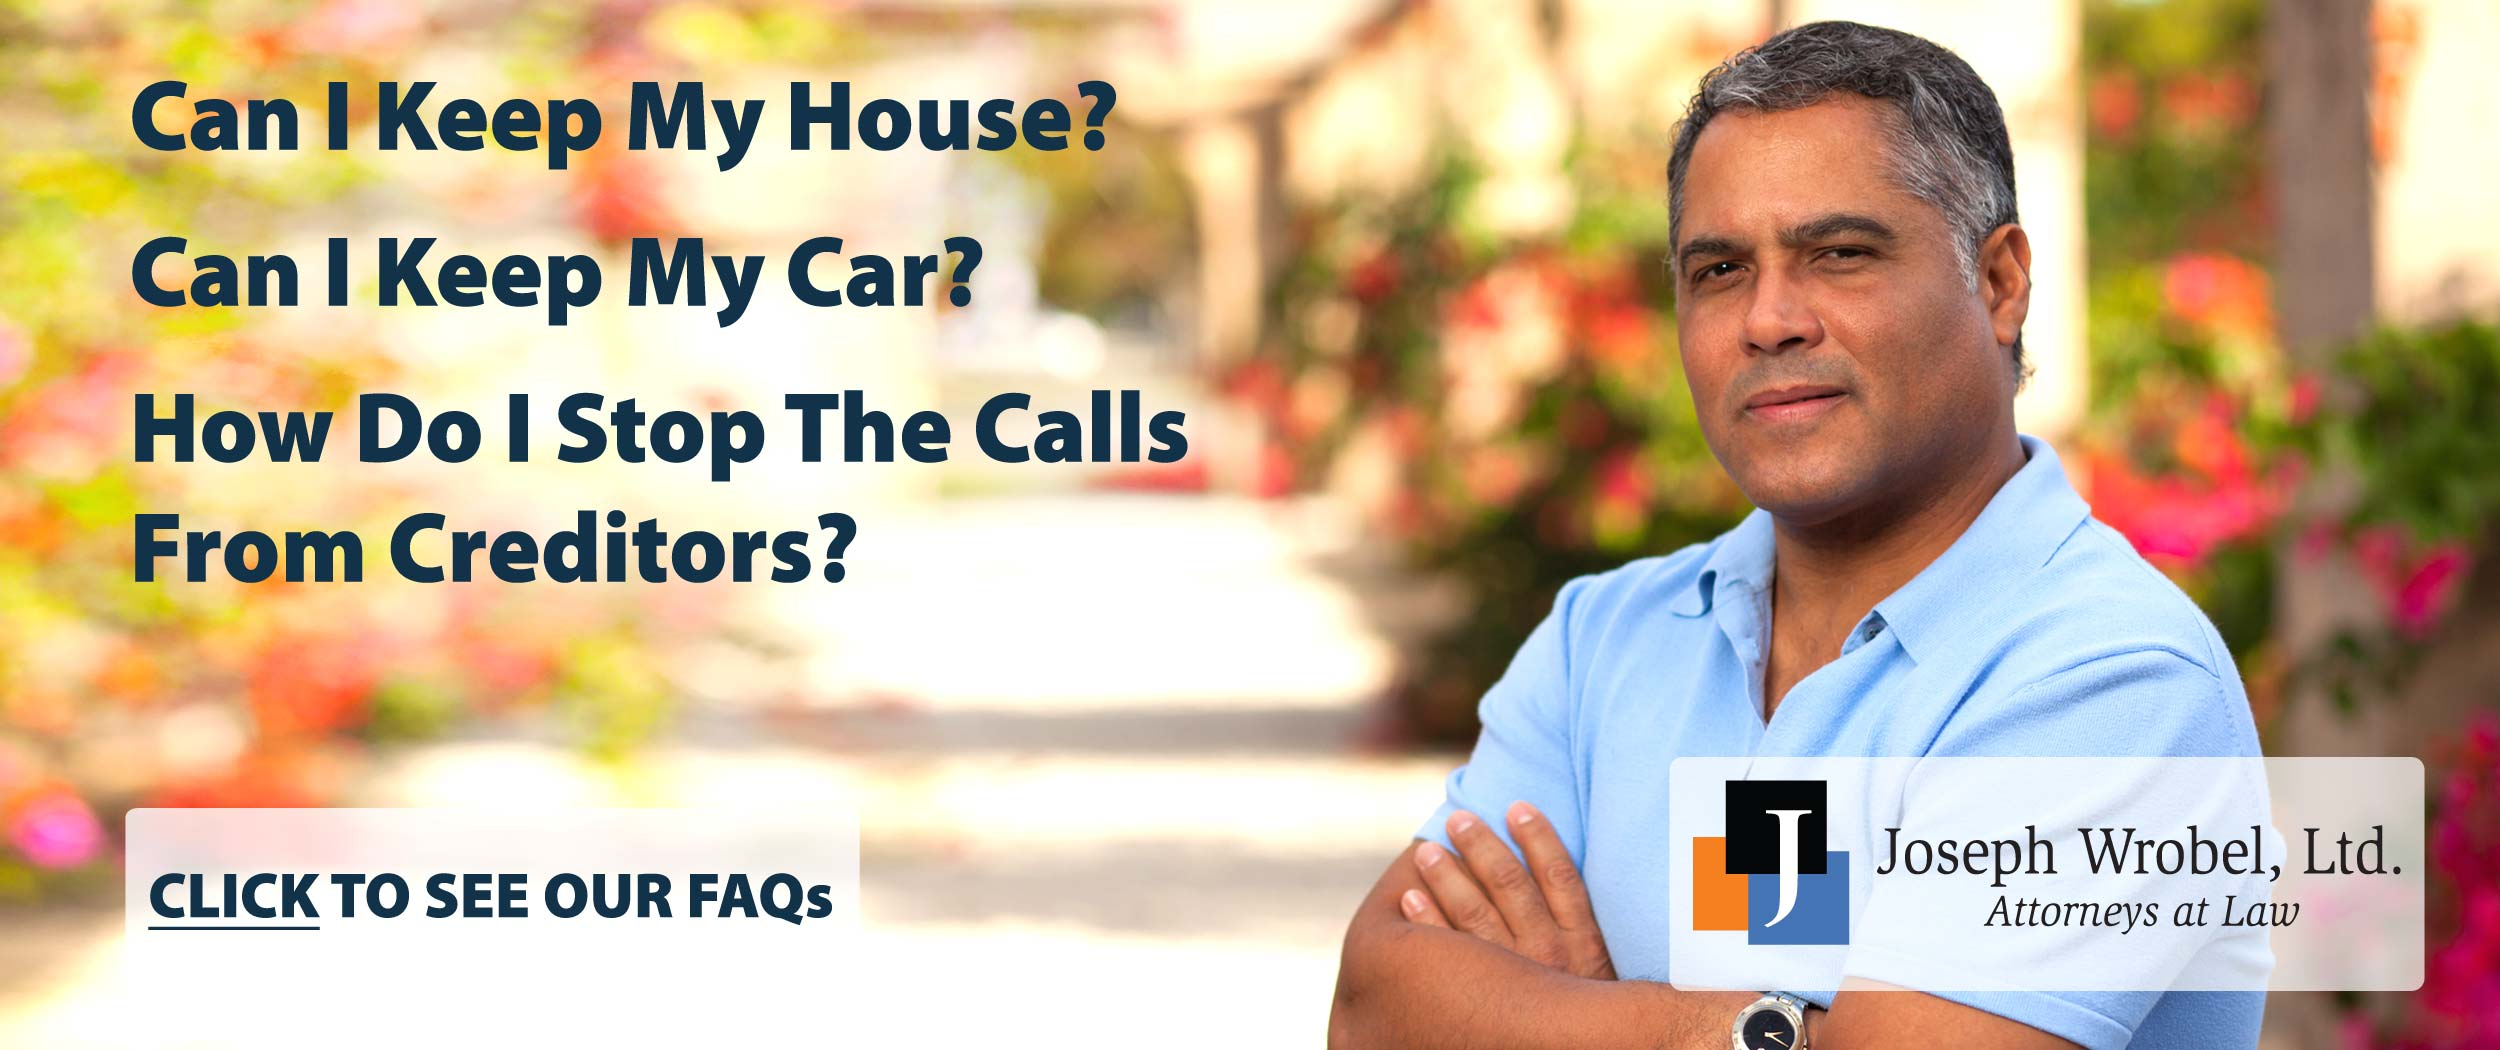 Can I keep my house? Can I keep my car? How do I stop the calls from creditors? Click to see our FAQs.